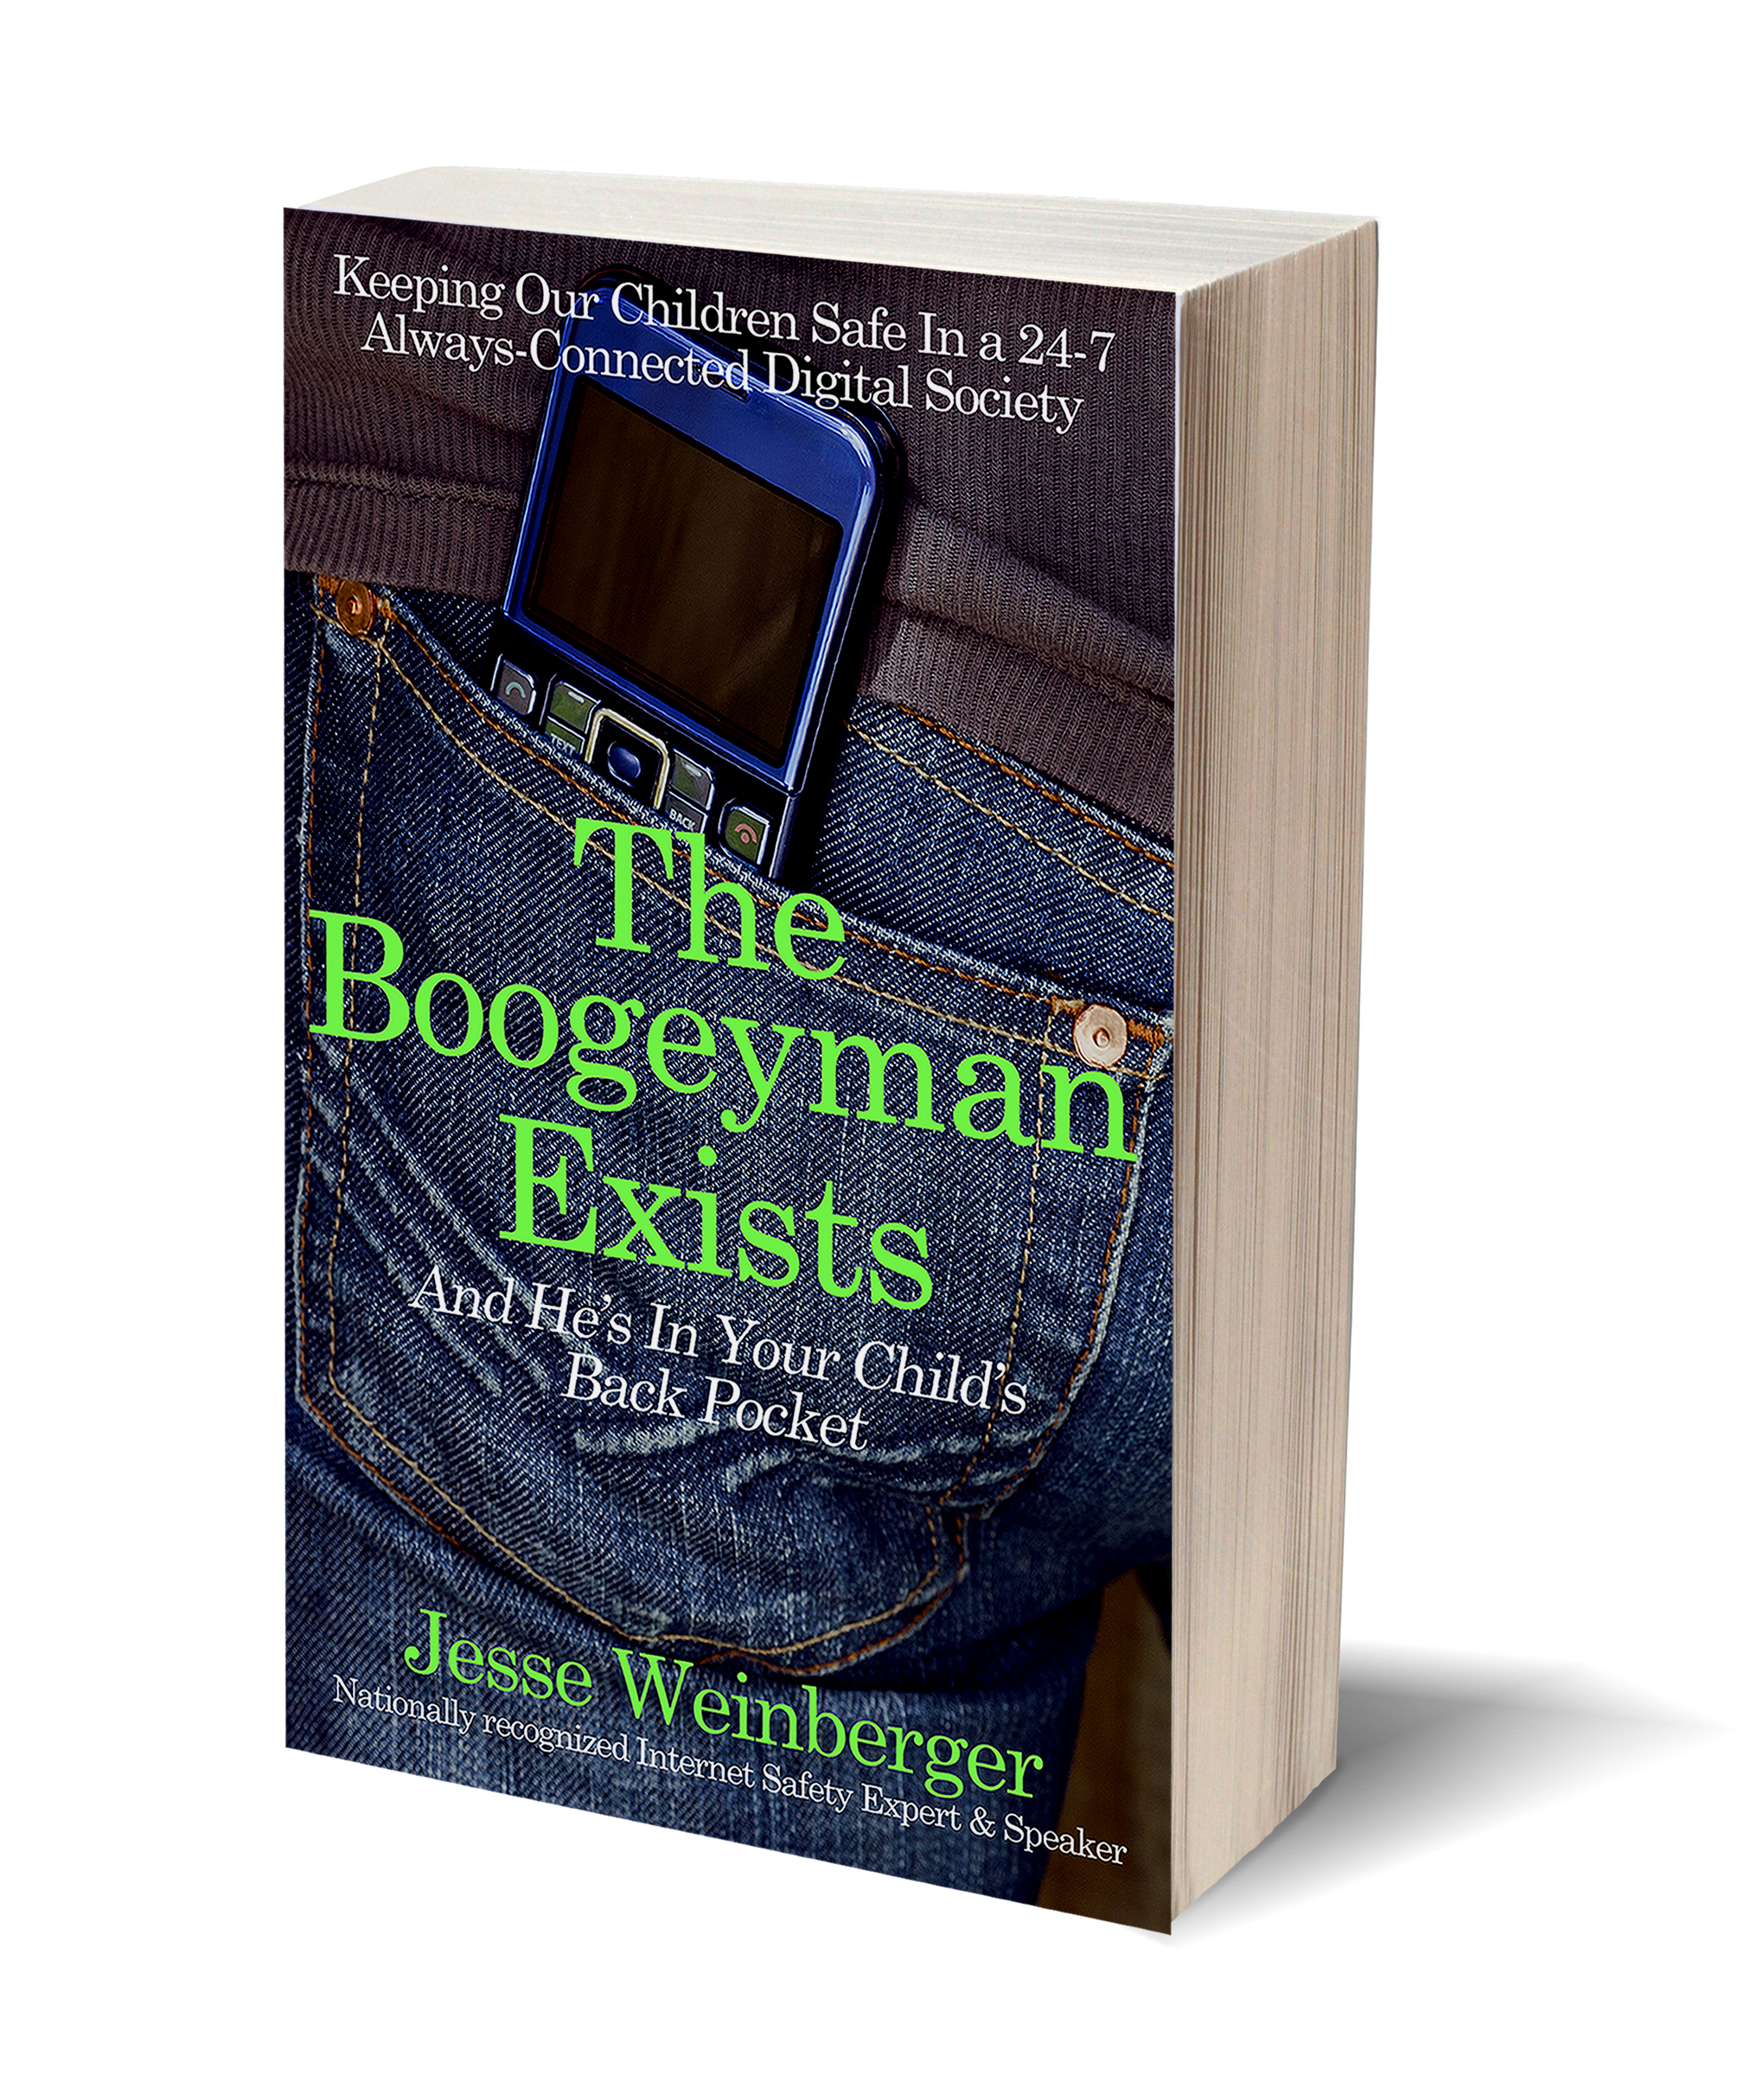 Internet Safety Book for Parents: The Boogeyman Exists by Jesse Weinberger